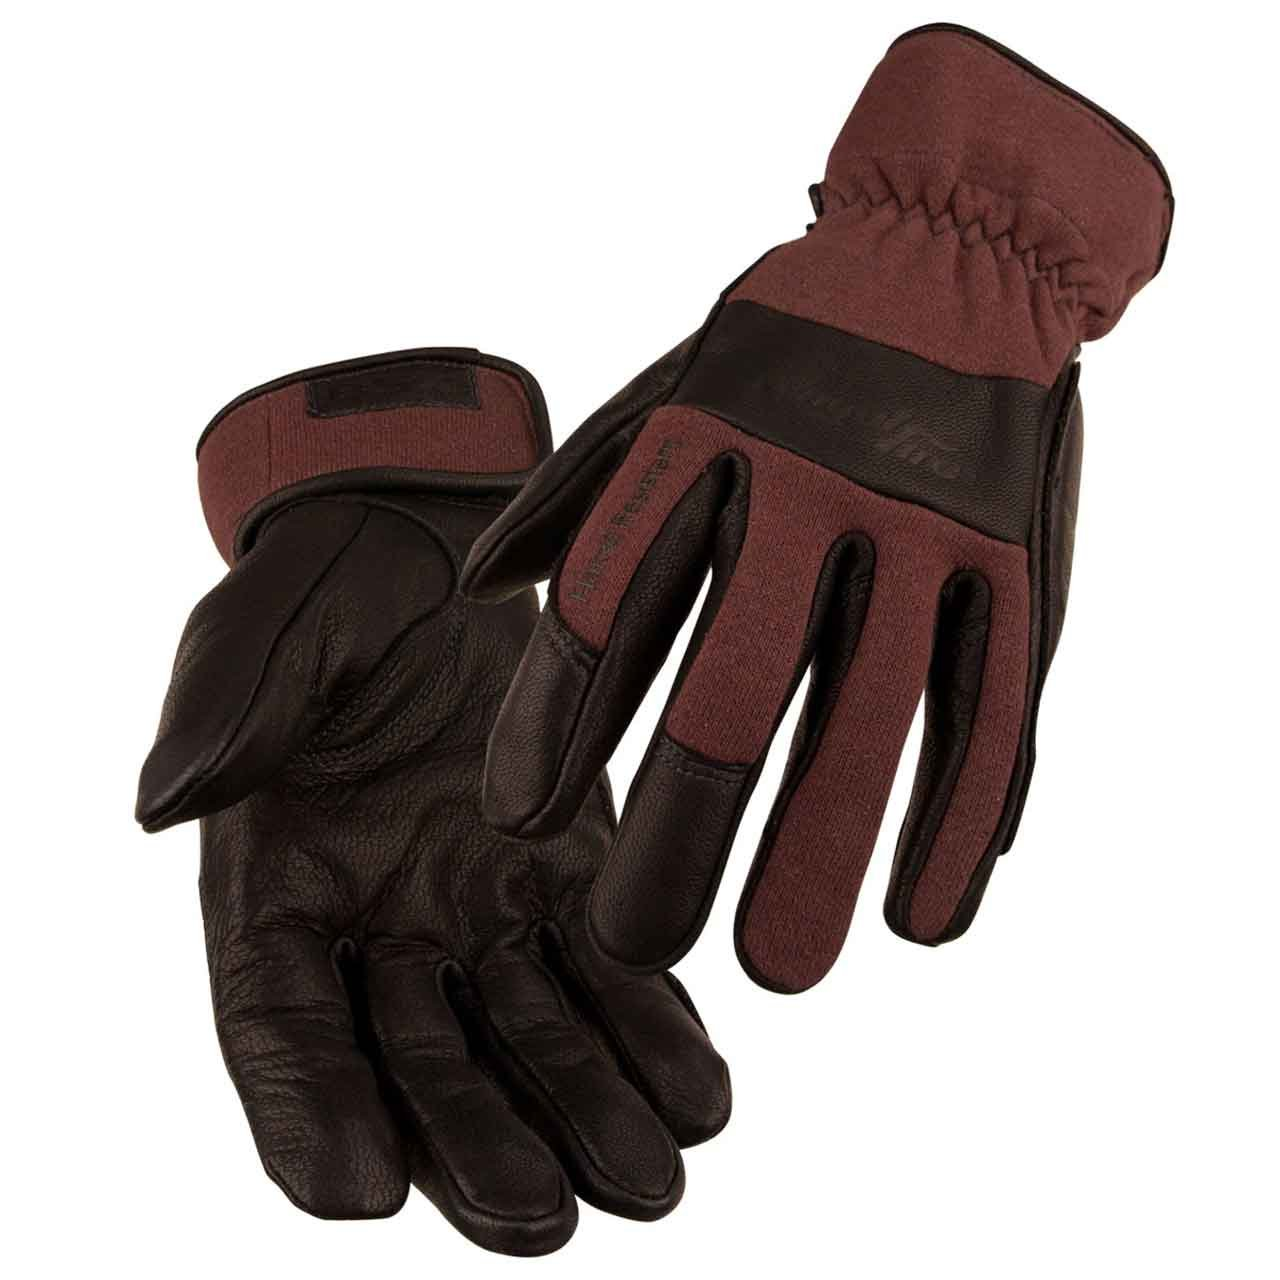 BLACK STALLION AngelFire™ Women's TIG Welding Gloves - Chocolate - MEDIUM